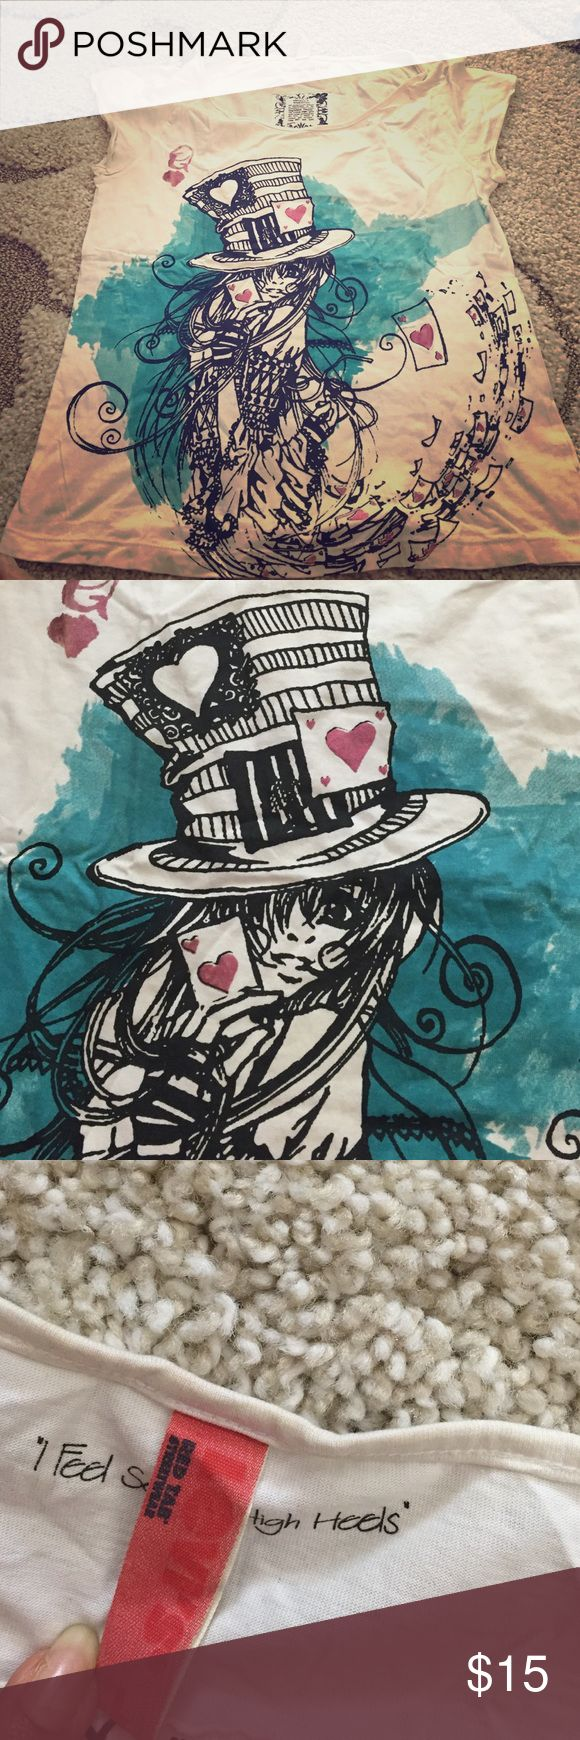 Alice in wonderland tee shirt White tee with blue and pink design. Cool Levis tee perfect for summers Levi's Tops Tees - Short Sleeve